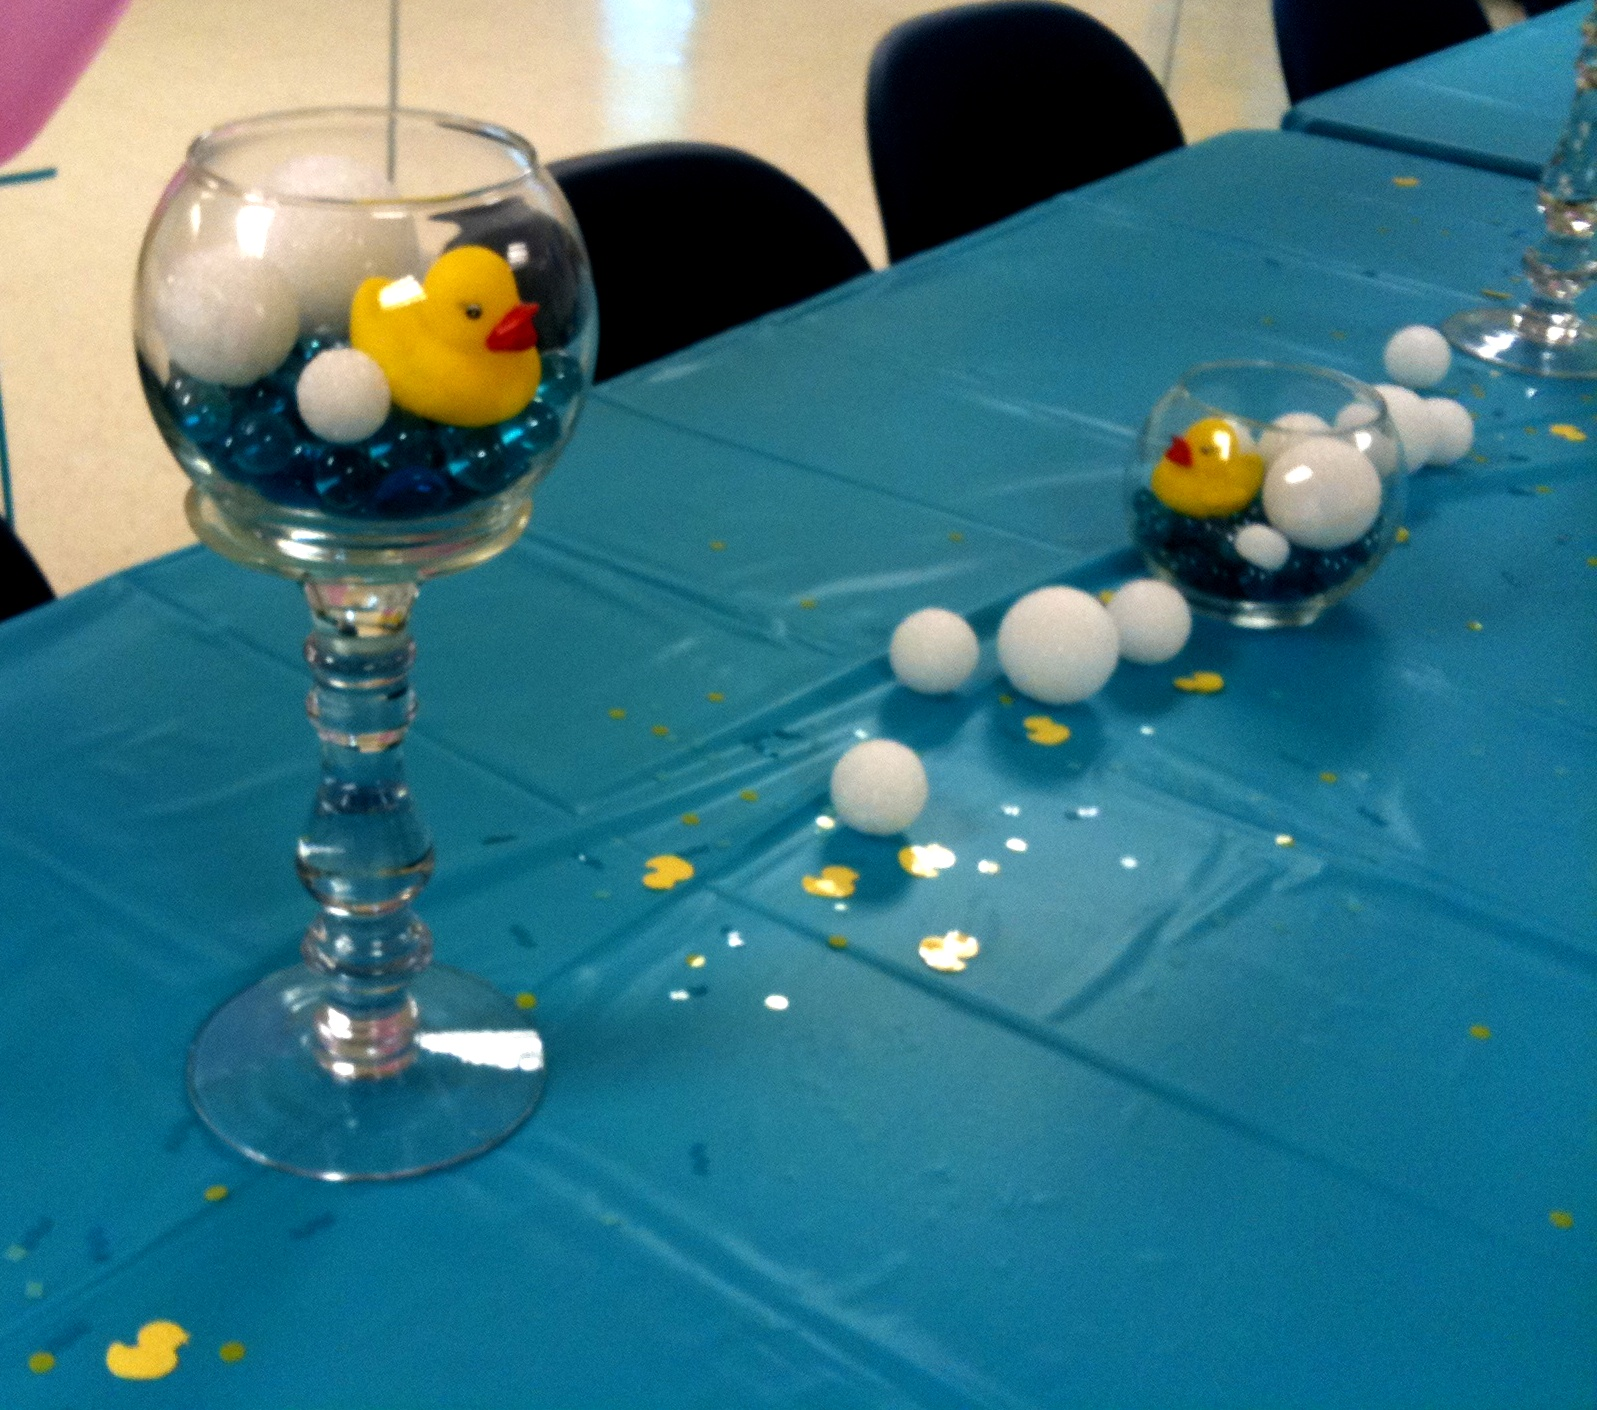 Rubber Duck Baby Shower Centerpieces http://everythingaesthetic.blogspot.com/2011/06/rubber-ducky-baby-shower.html